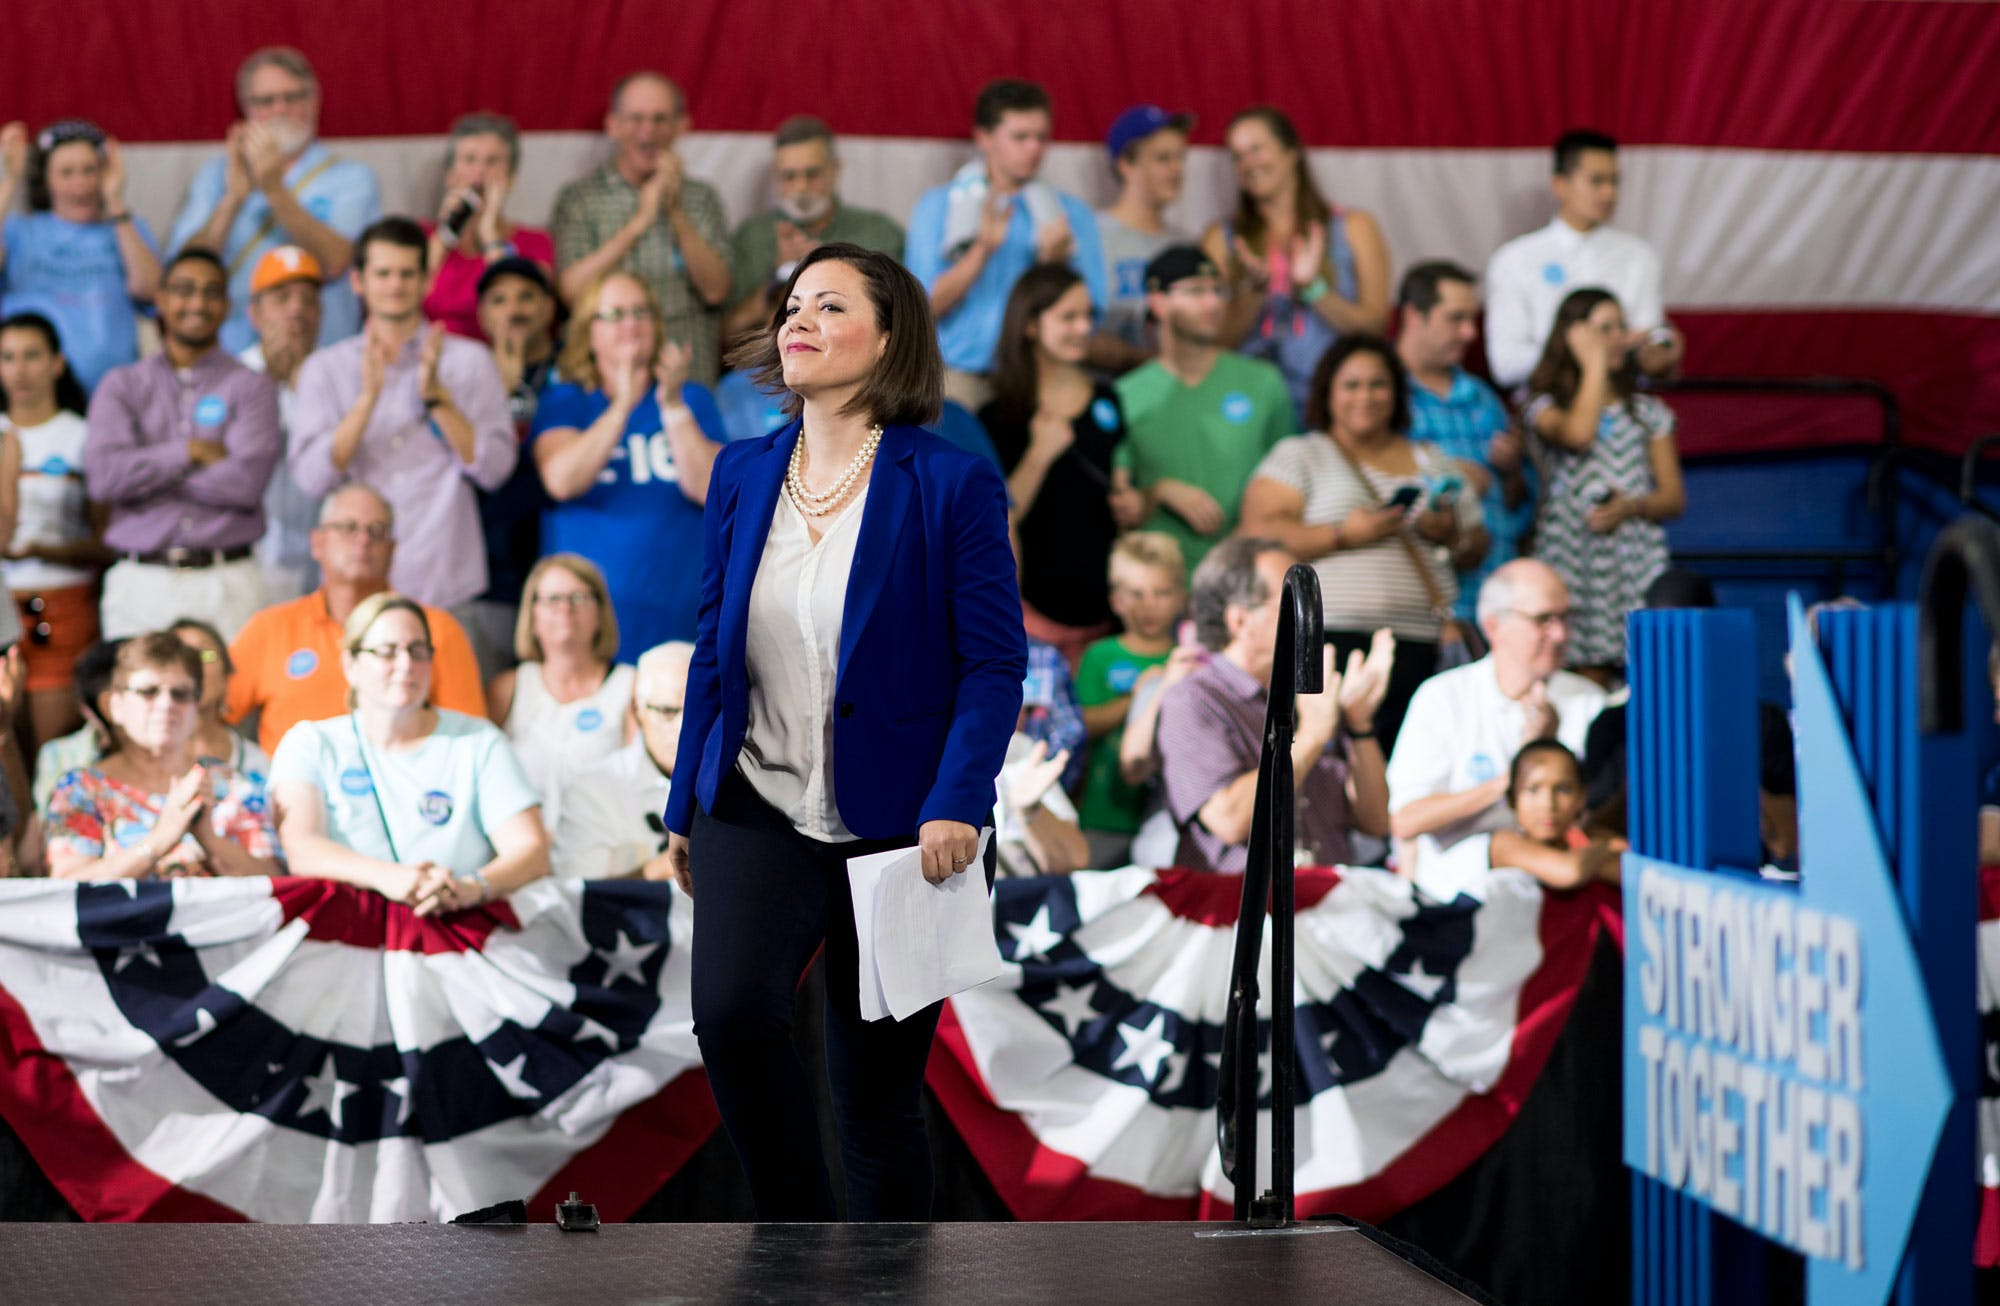 UNITED STATES - AUGUST 30: Candidate for U.S. Congress Christina Hartman, D-Pa., speaks during the Democratic nominee for Vice President Sen. Tim Kaine, D-Va., campaign rally at the Boys & Girls Club in Lancaster, Pa., on Tuesday, Aug. 30, 2016. (Photo By Bill Clark/CQ Roll Call) (CQ Roll Call via AP Images)